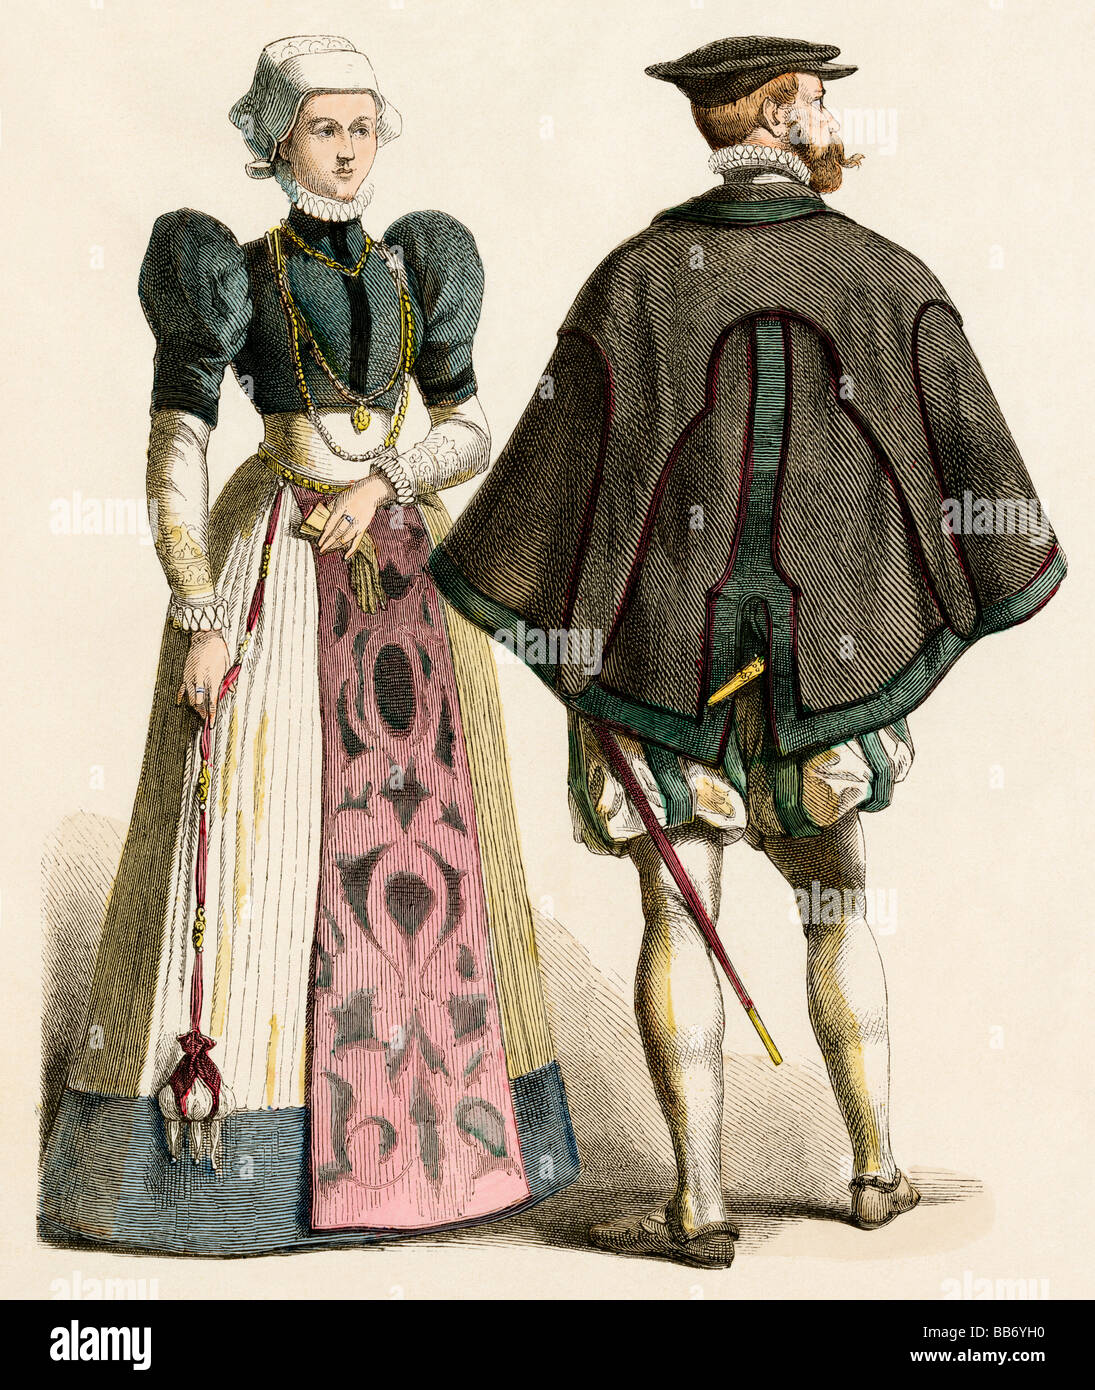 German citizens of the late 16th century. Hand-colored print - Stock Image